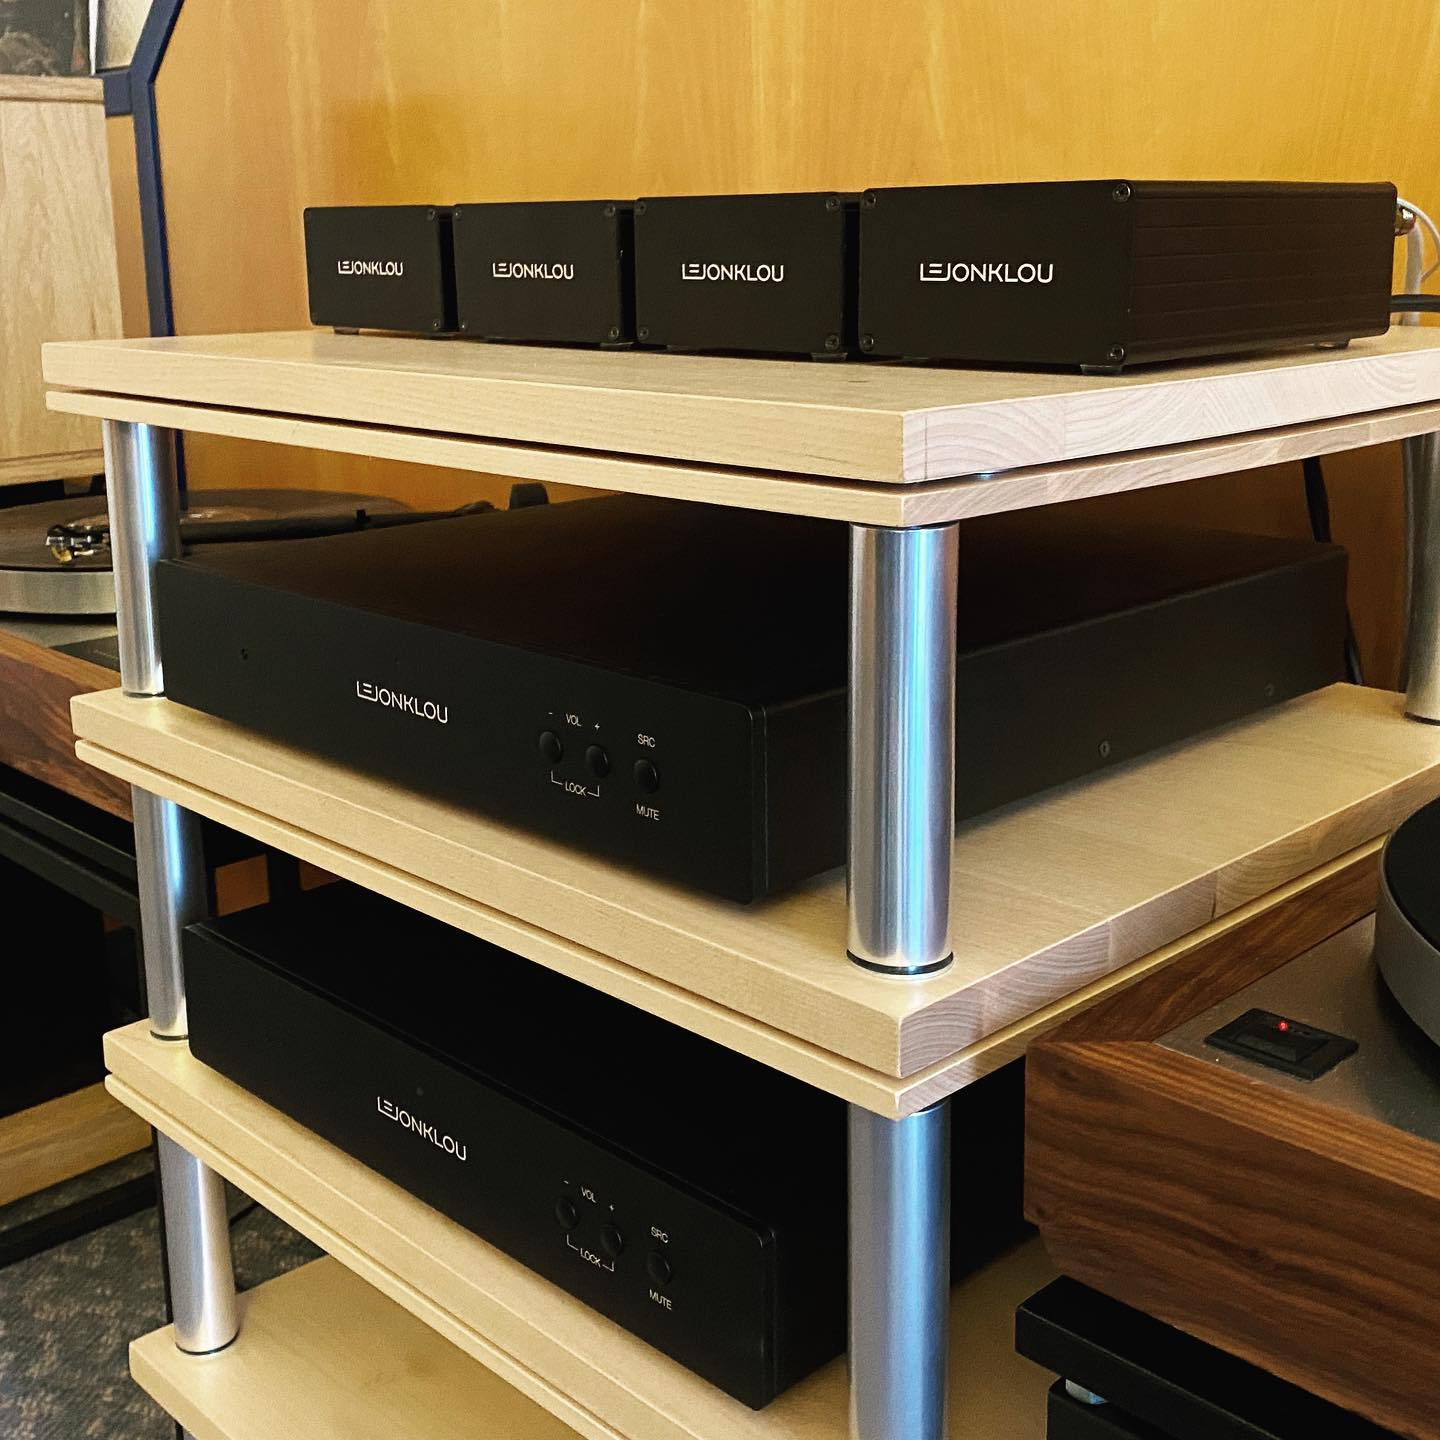 Phono stage shootout in room 347 at Norddeutsche HiFi-Tage in Hamburg: Gaio 2 vs Gaio 2.4 vs Slipsik 7.1 vs Entity.  Overwhelmingly positive response from the crowd and Marco of @hexagonaudio.eu is as always super nice to everyone.